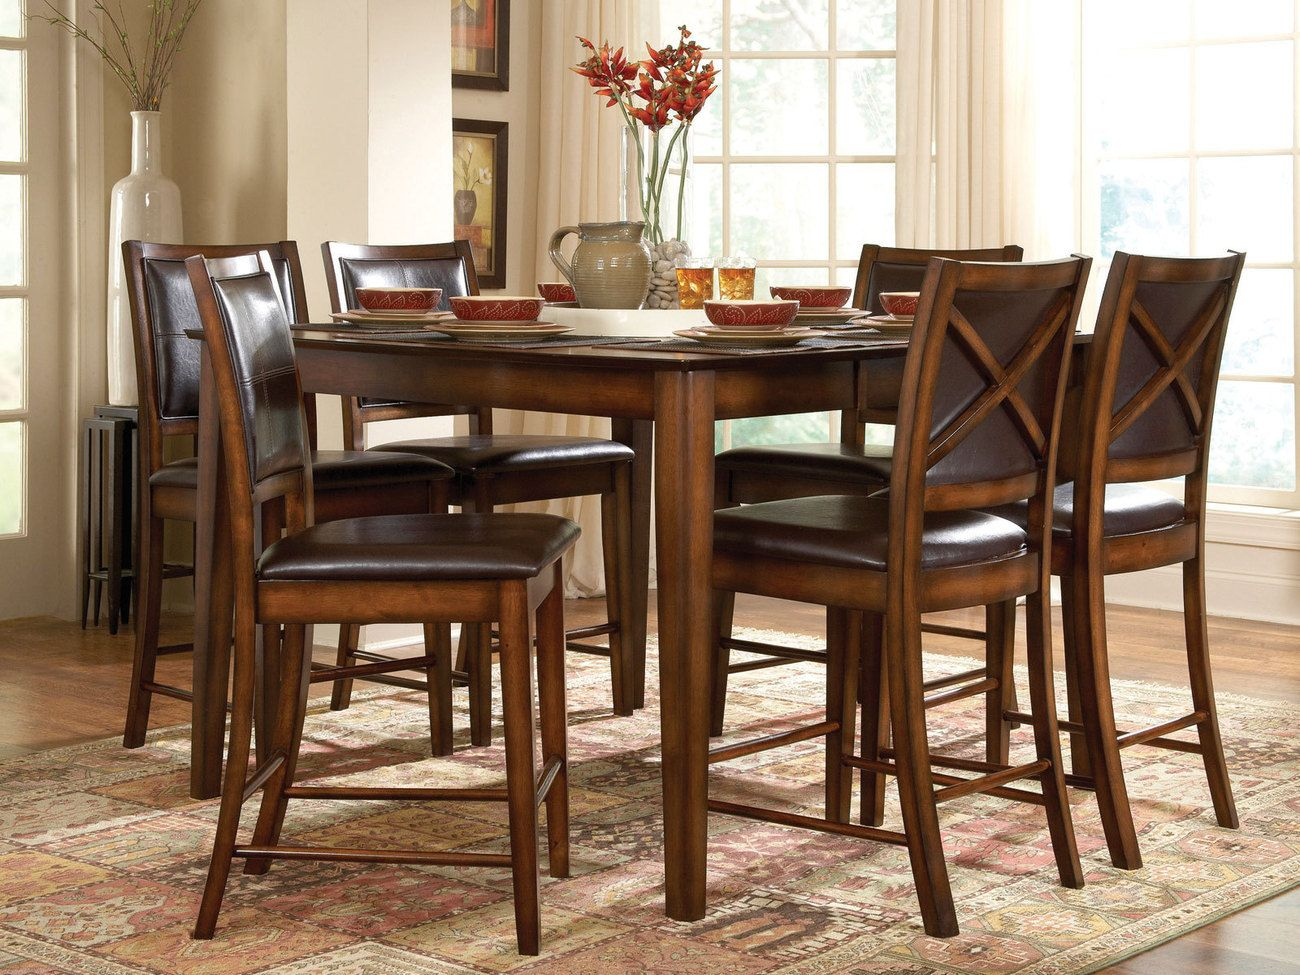 High Dining Room Table Sets | DINING FURNITURE | Pinterest | Dining ...